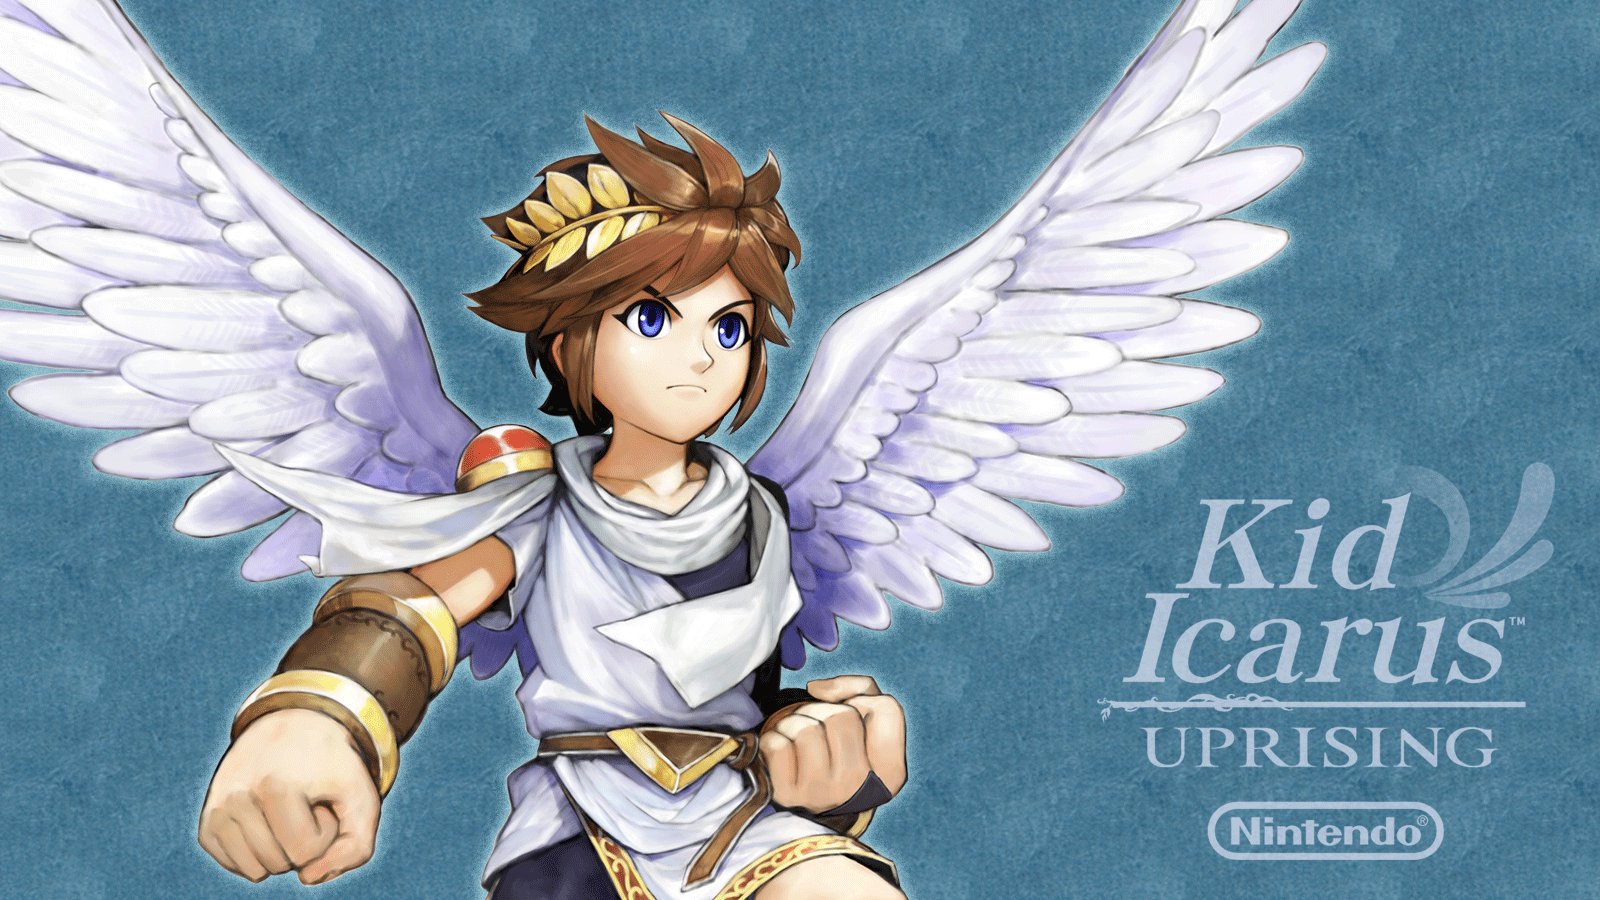 Kid Icarus Uprising On Amazon For Wii U